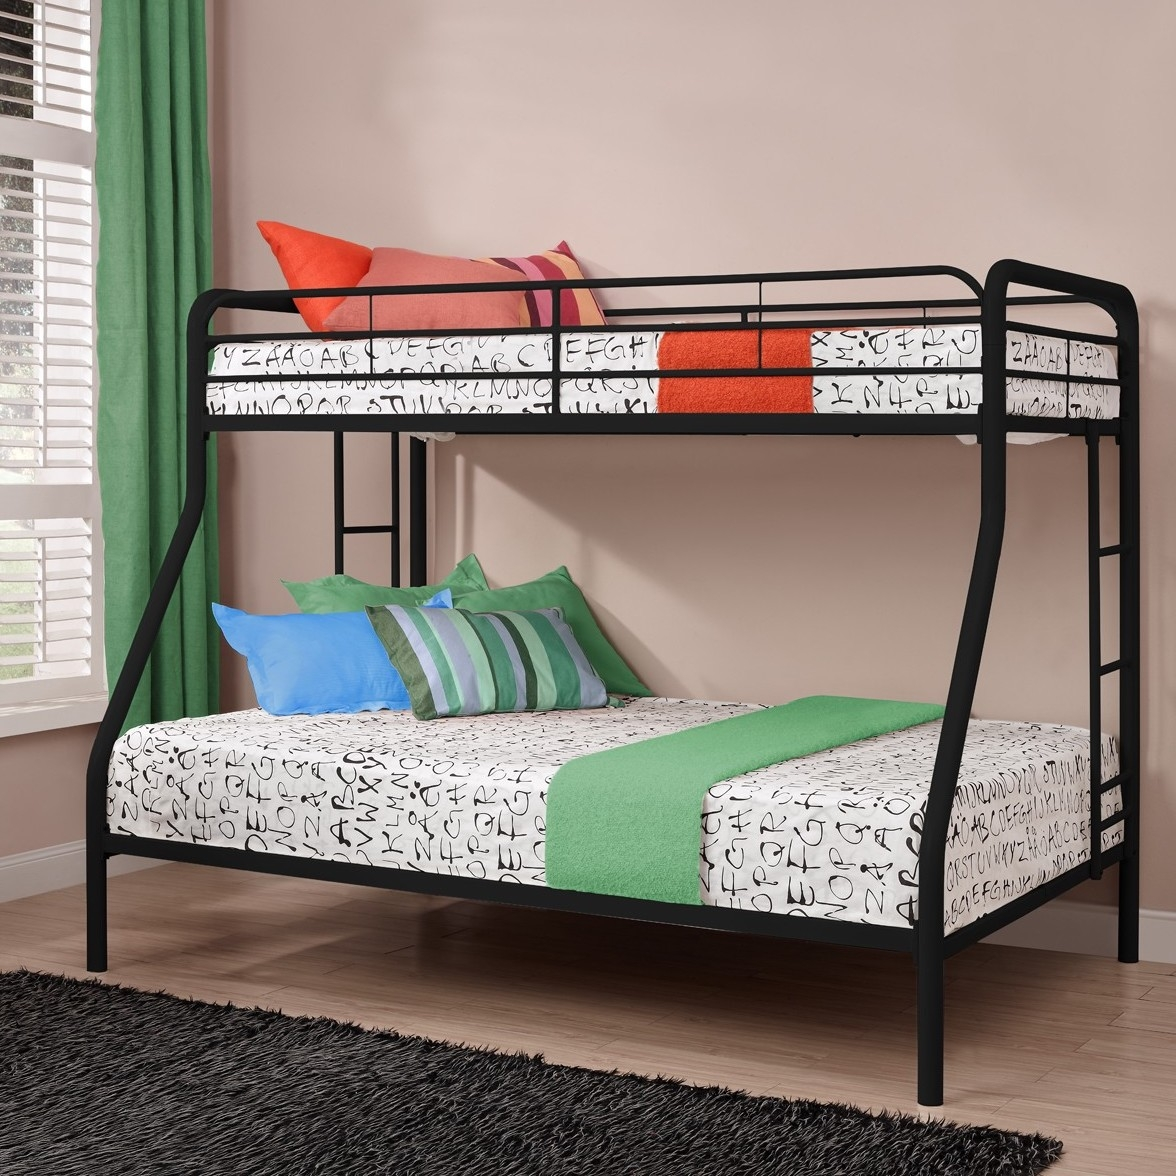 Metal bunk beds full over full - Twin Over Full Size Bunk Bed In Sturdy Black Metal